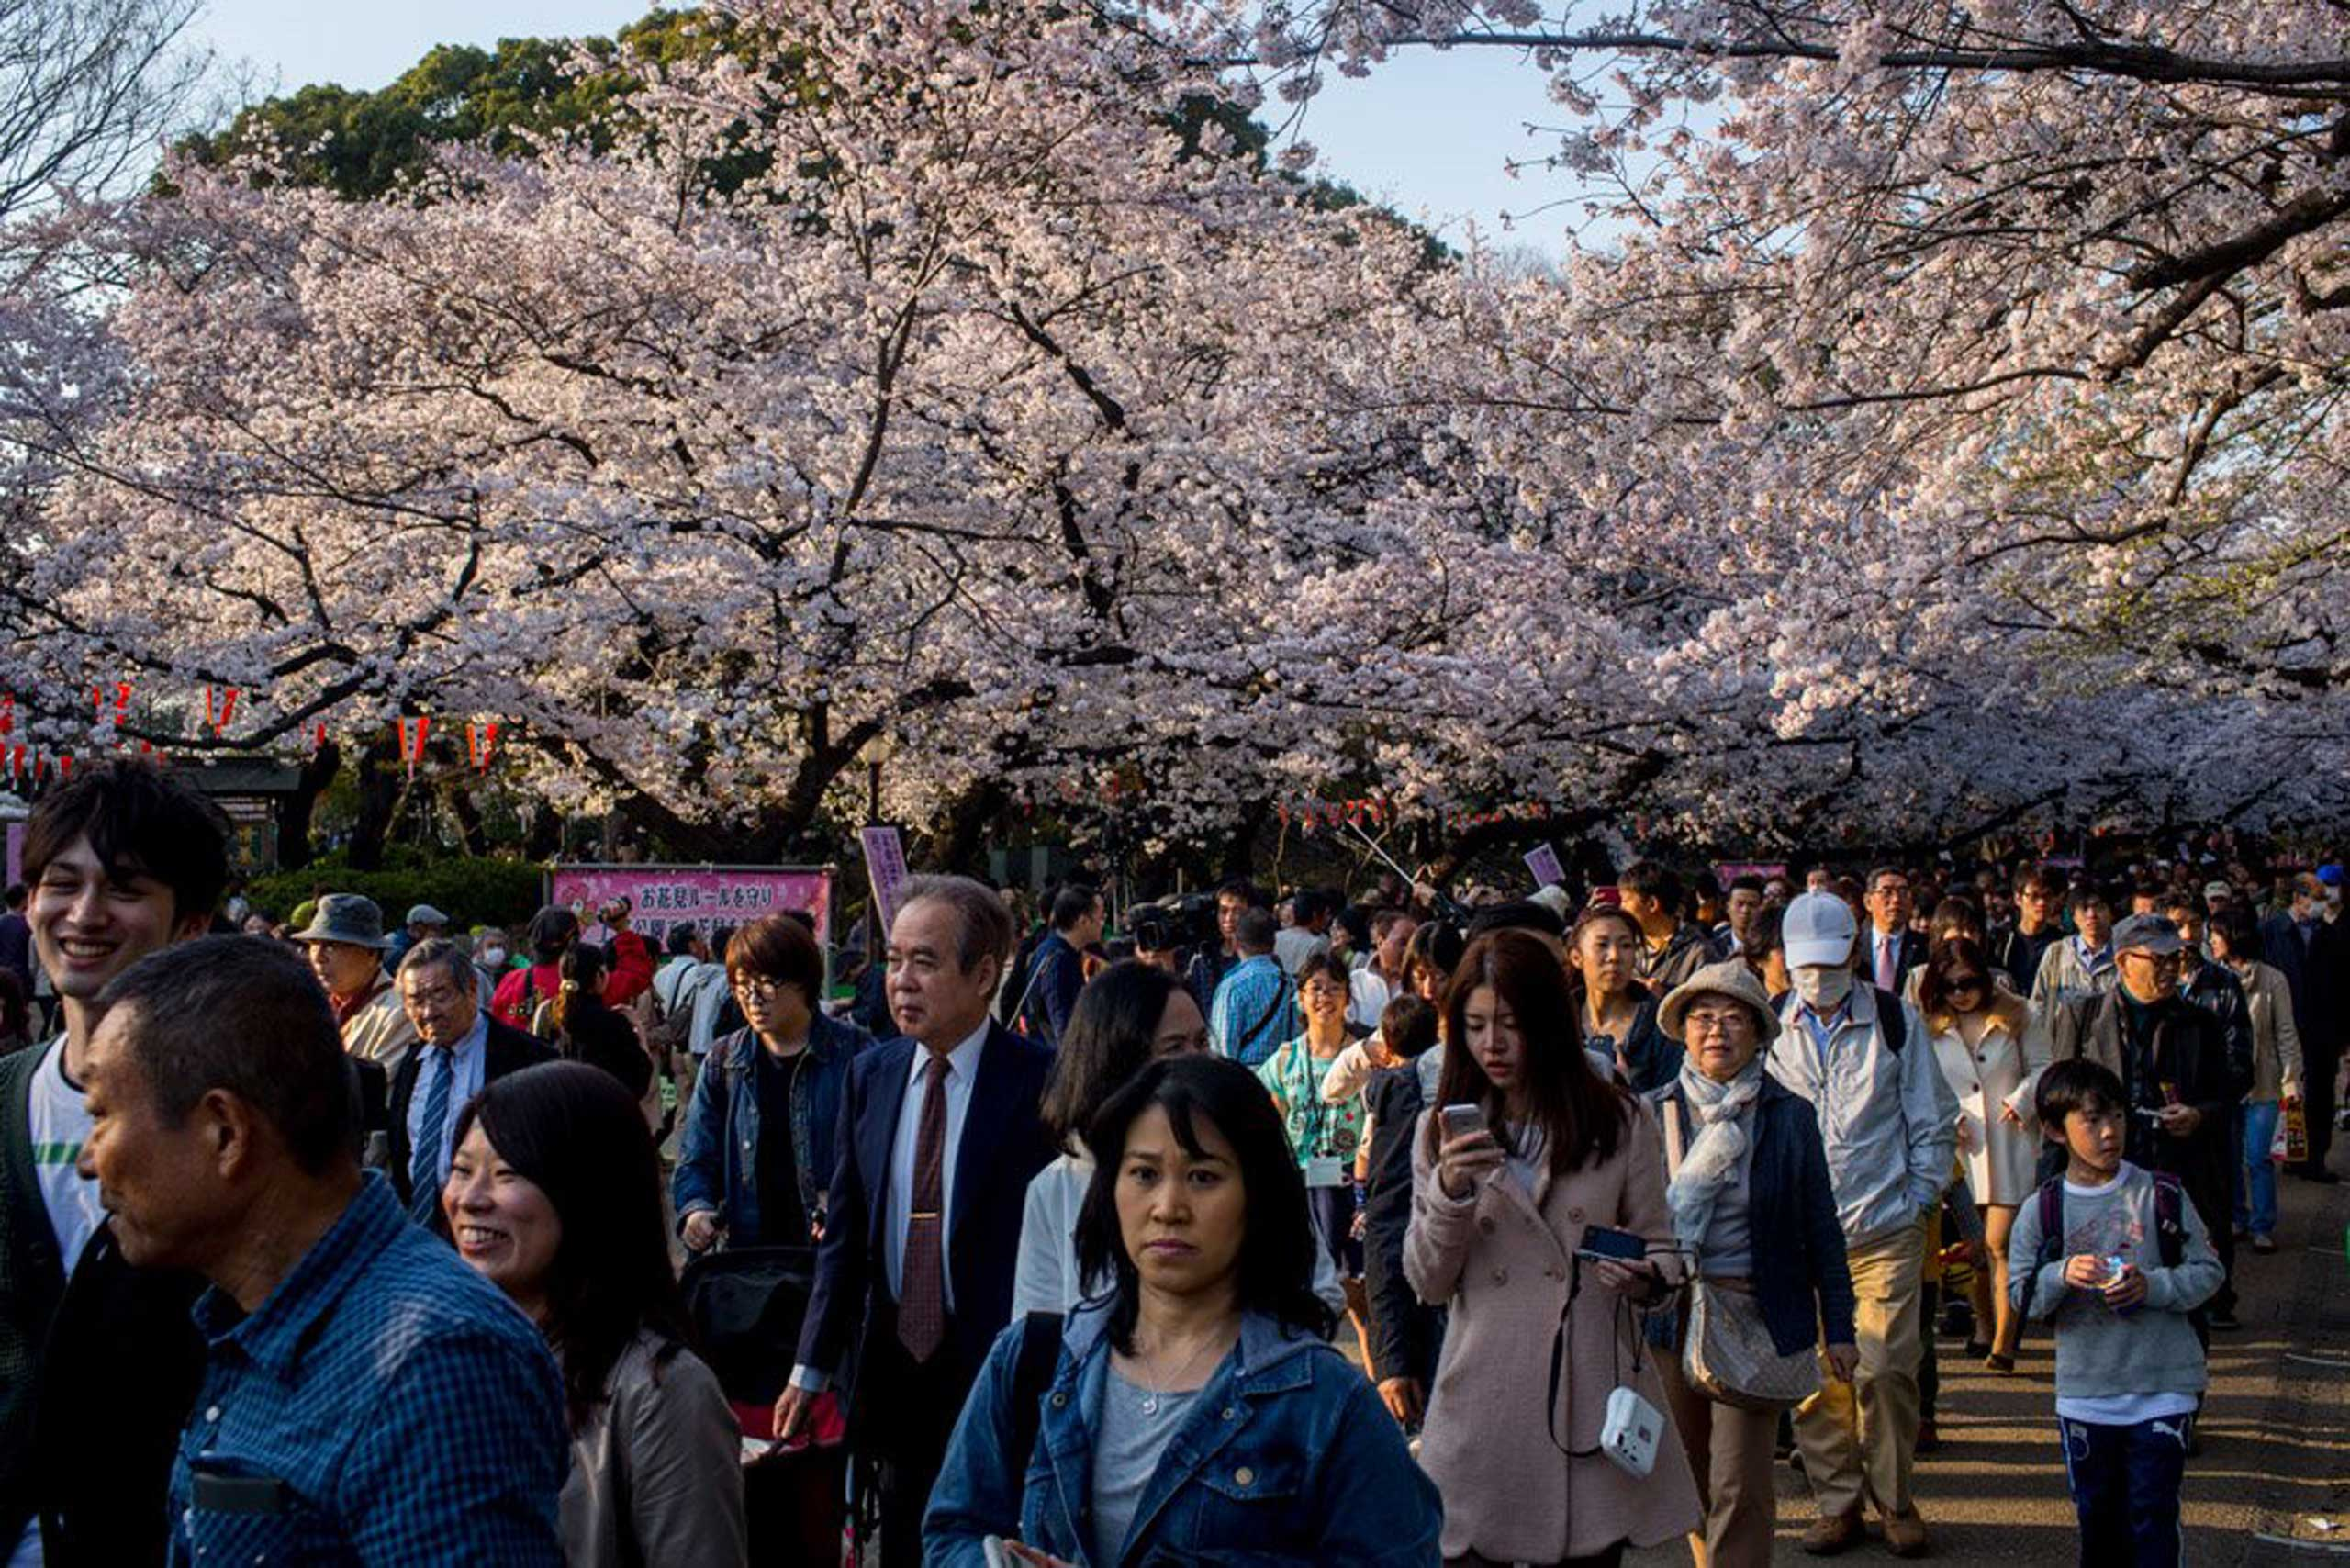 People walk under blooming cherry blossom trees in Ueno Park in Tokyo on March 30, 2015.